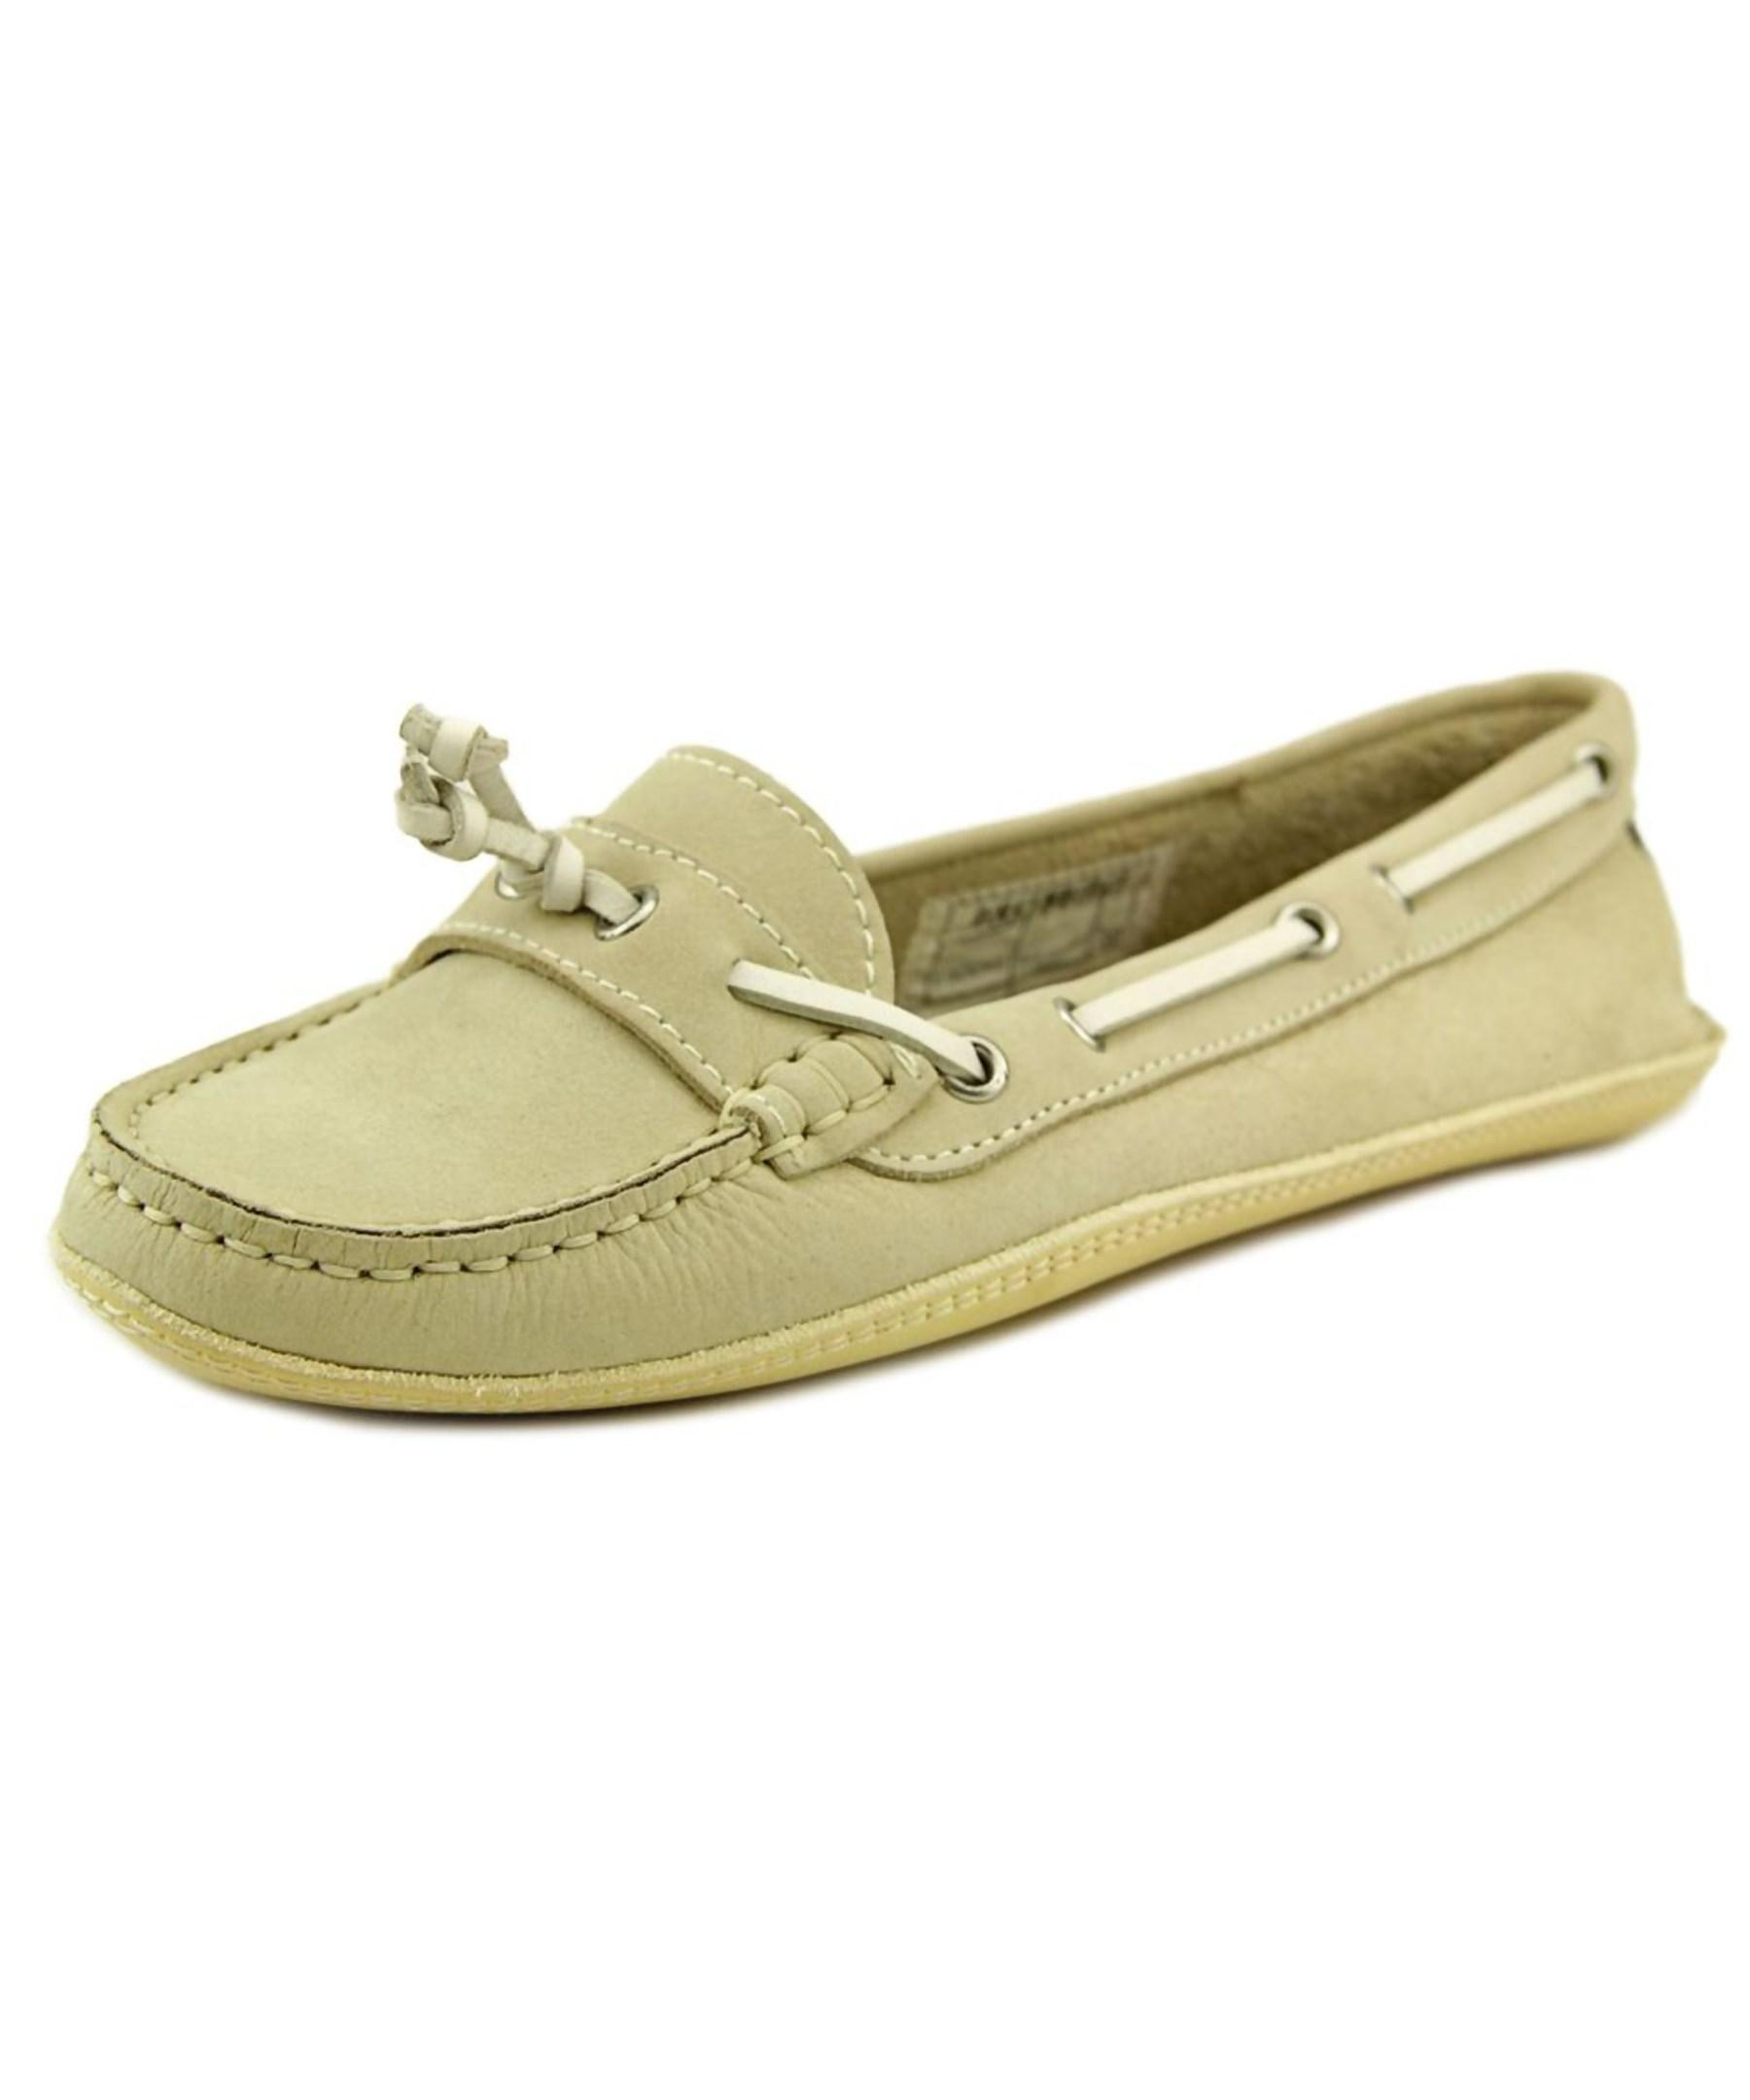 bikkembergs bke101503 moc toe leather boat shoe in white